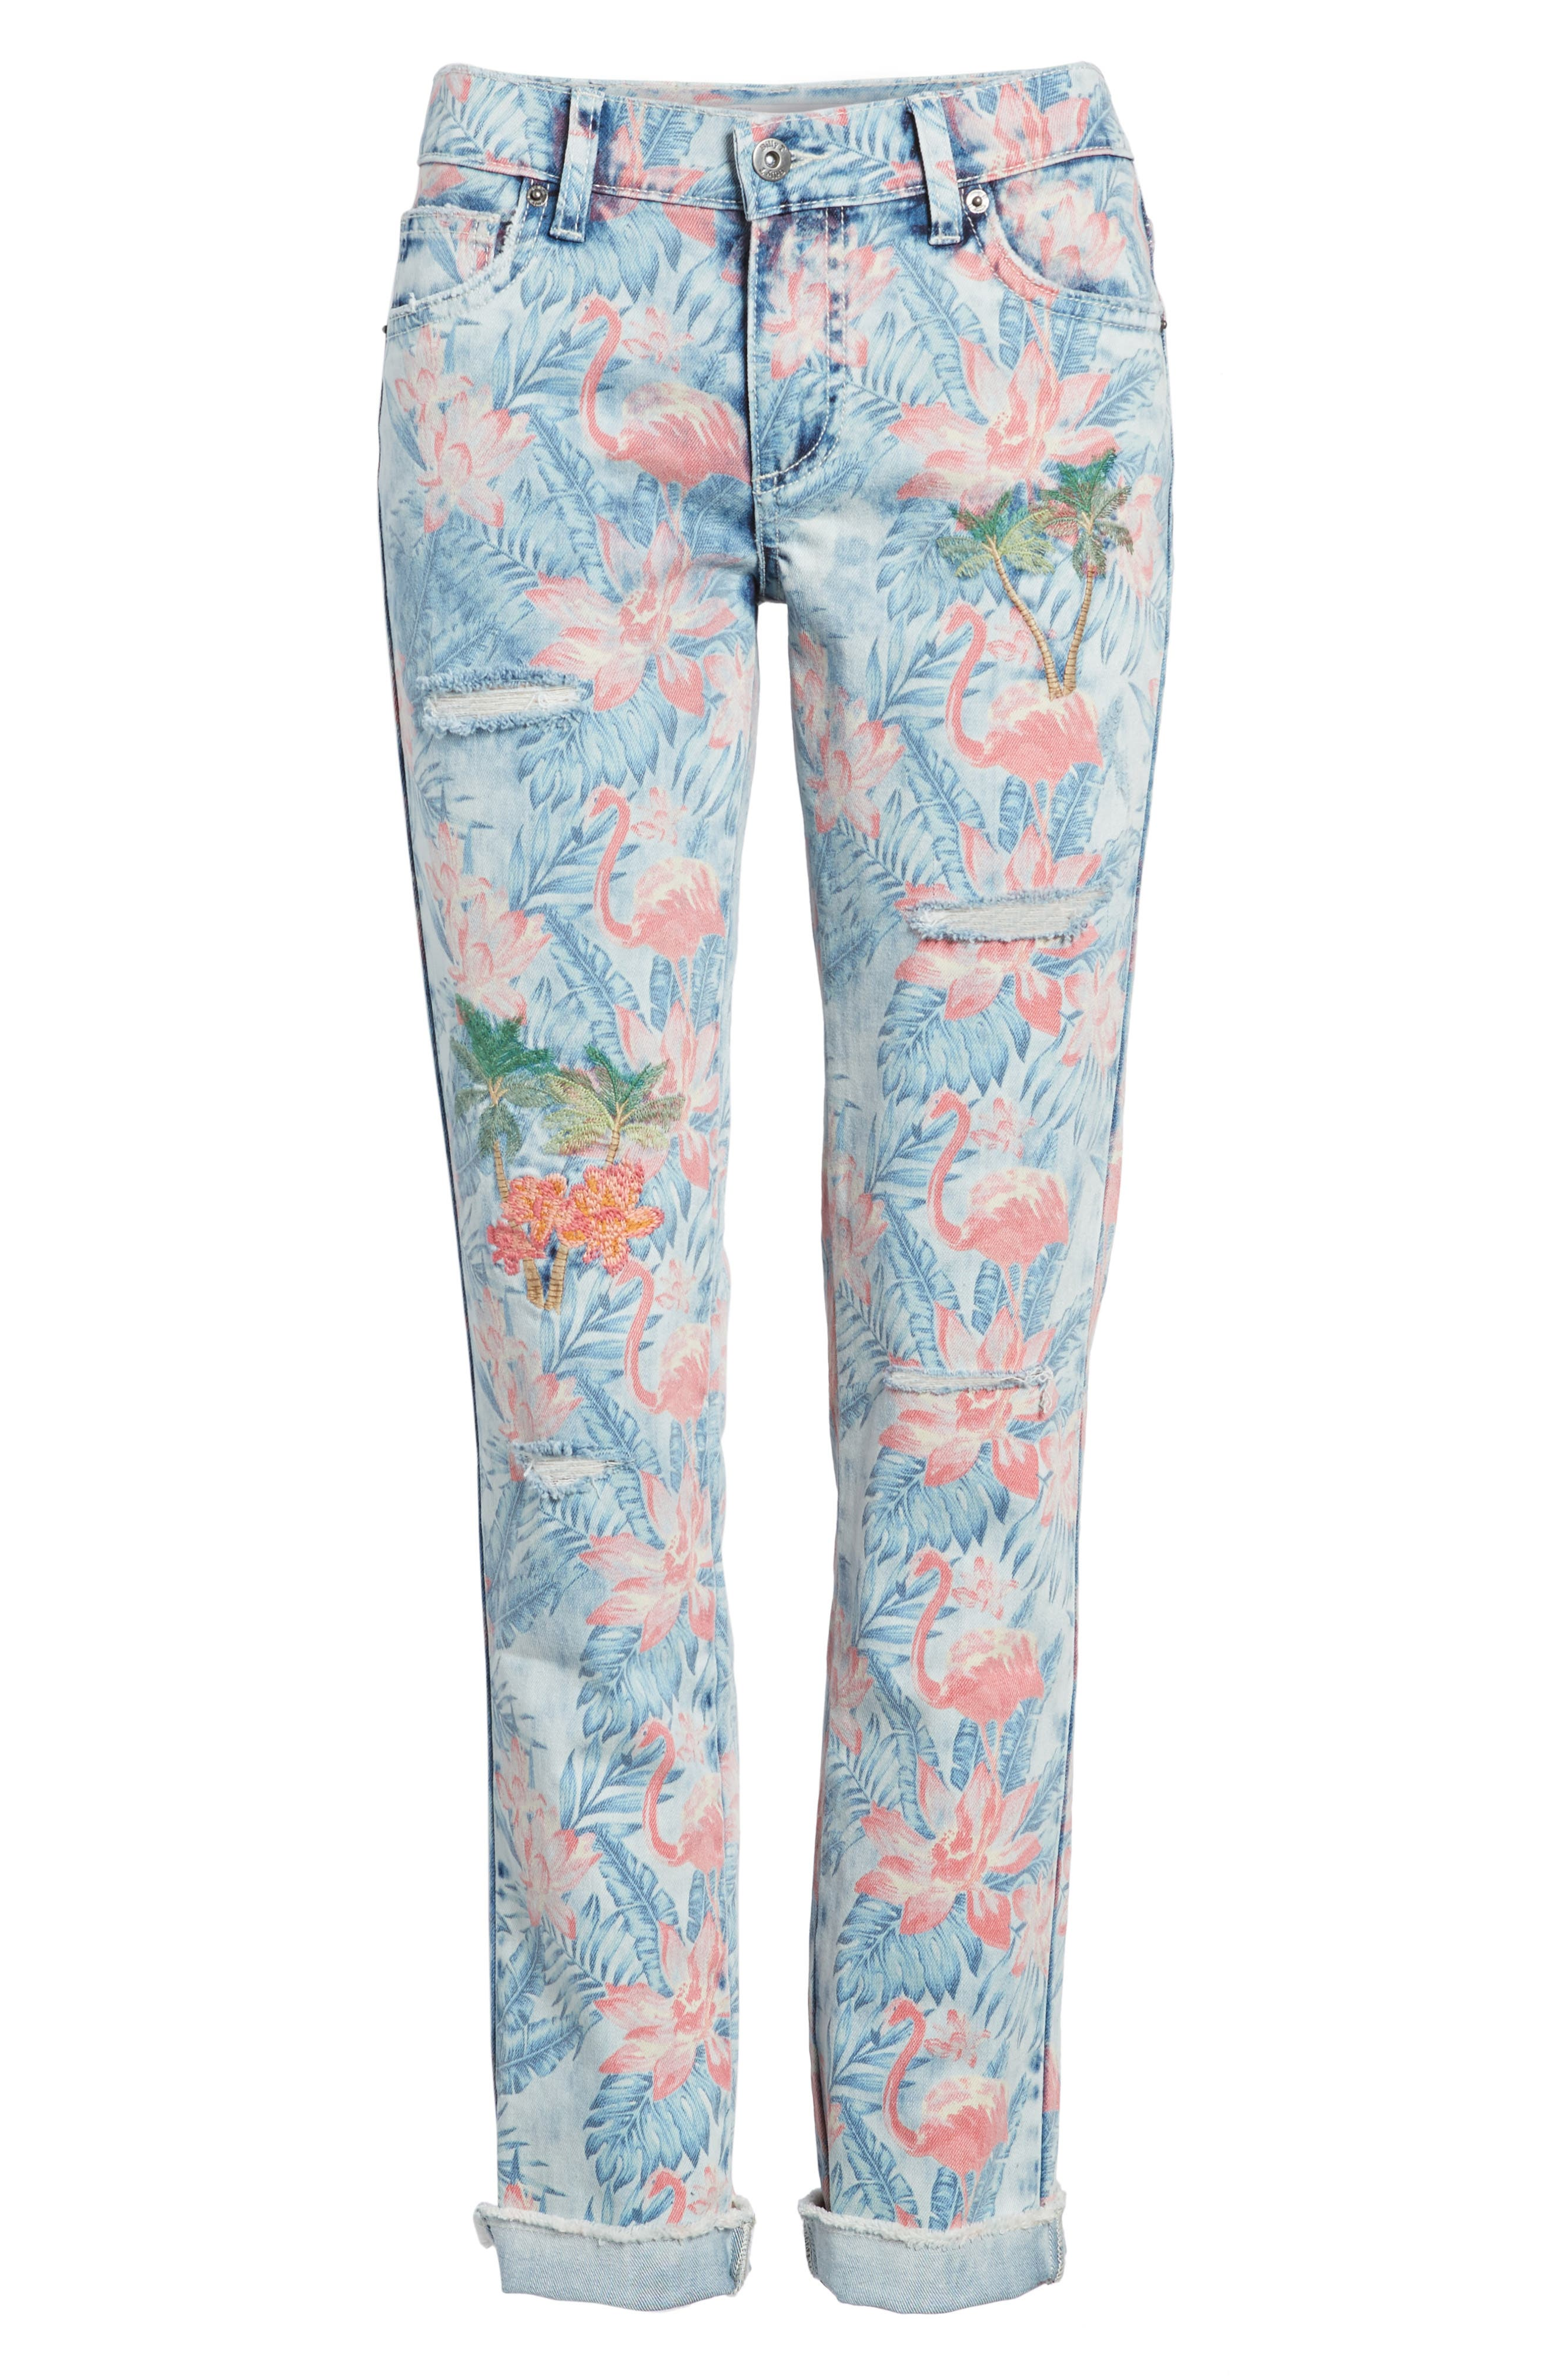 Embroidered Distressed Flamingo Jeans,                             Alternate thumbnail 7, color,                             Light Blue Paradise